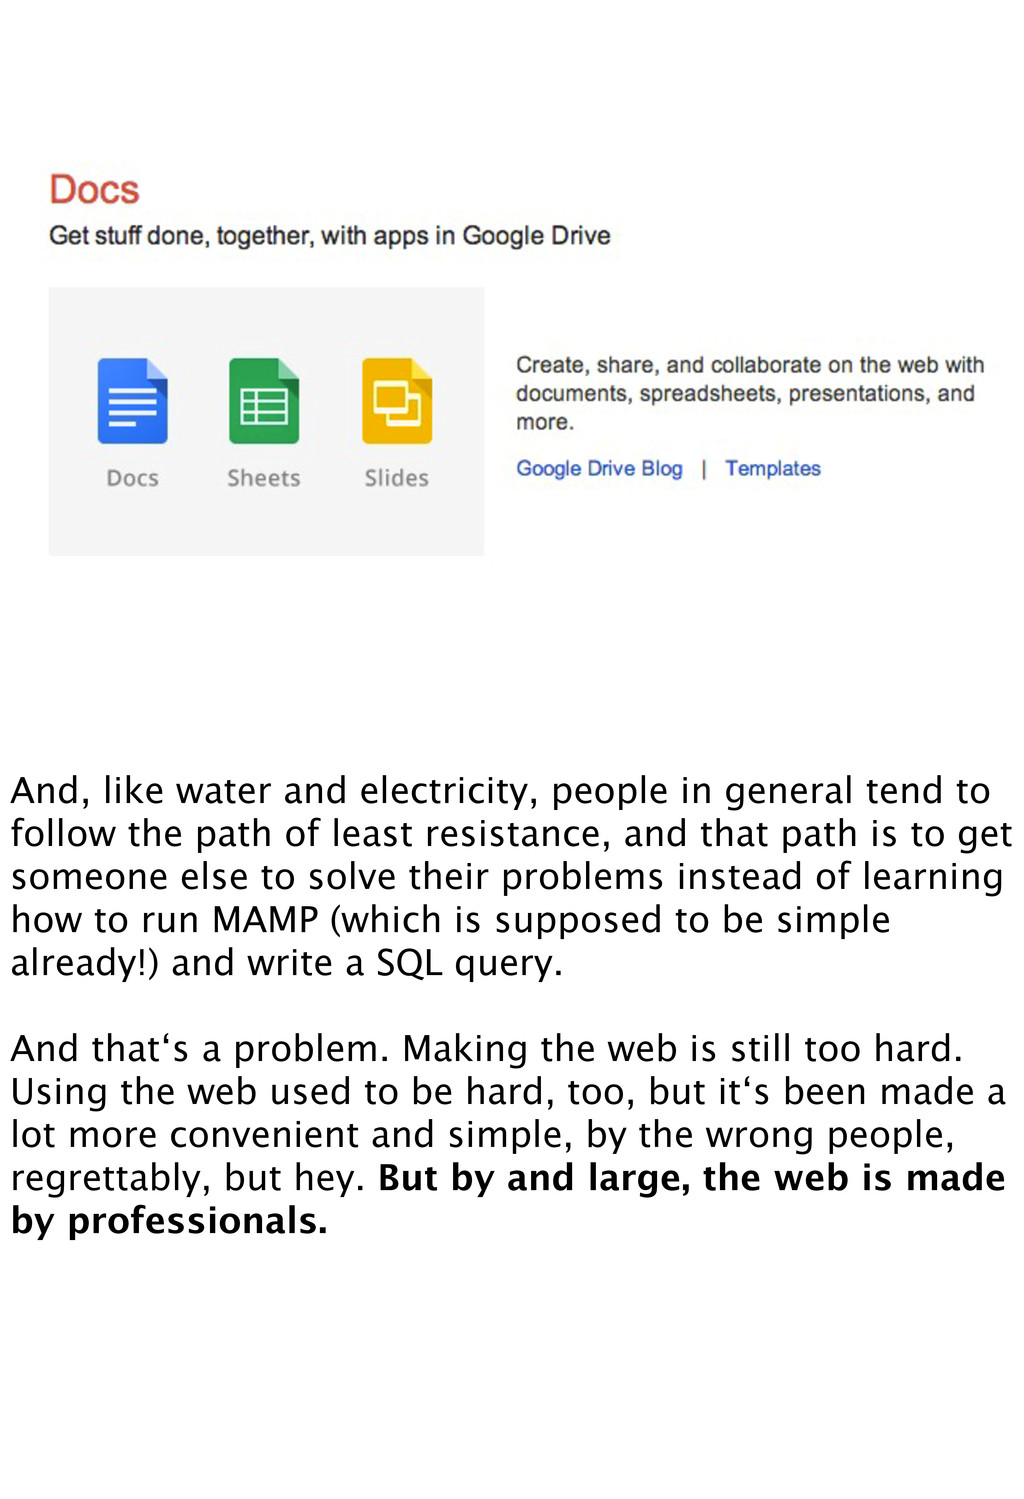 And, like water and electricity, people in gene...